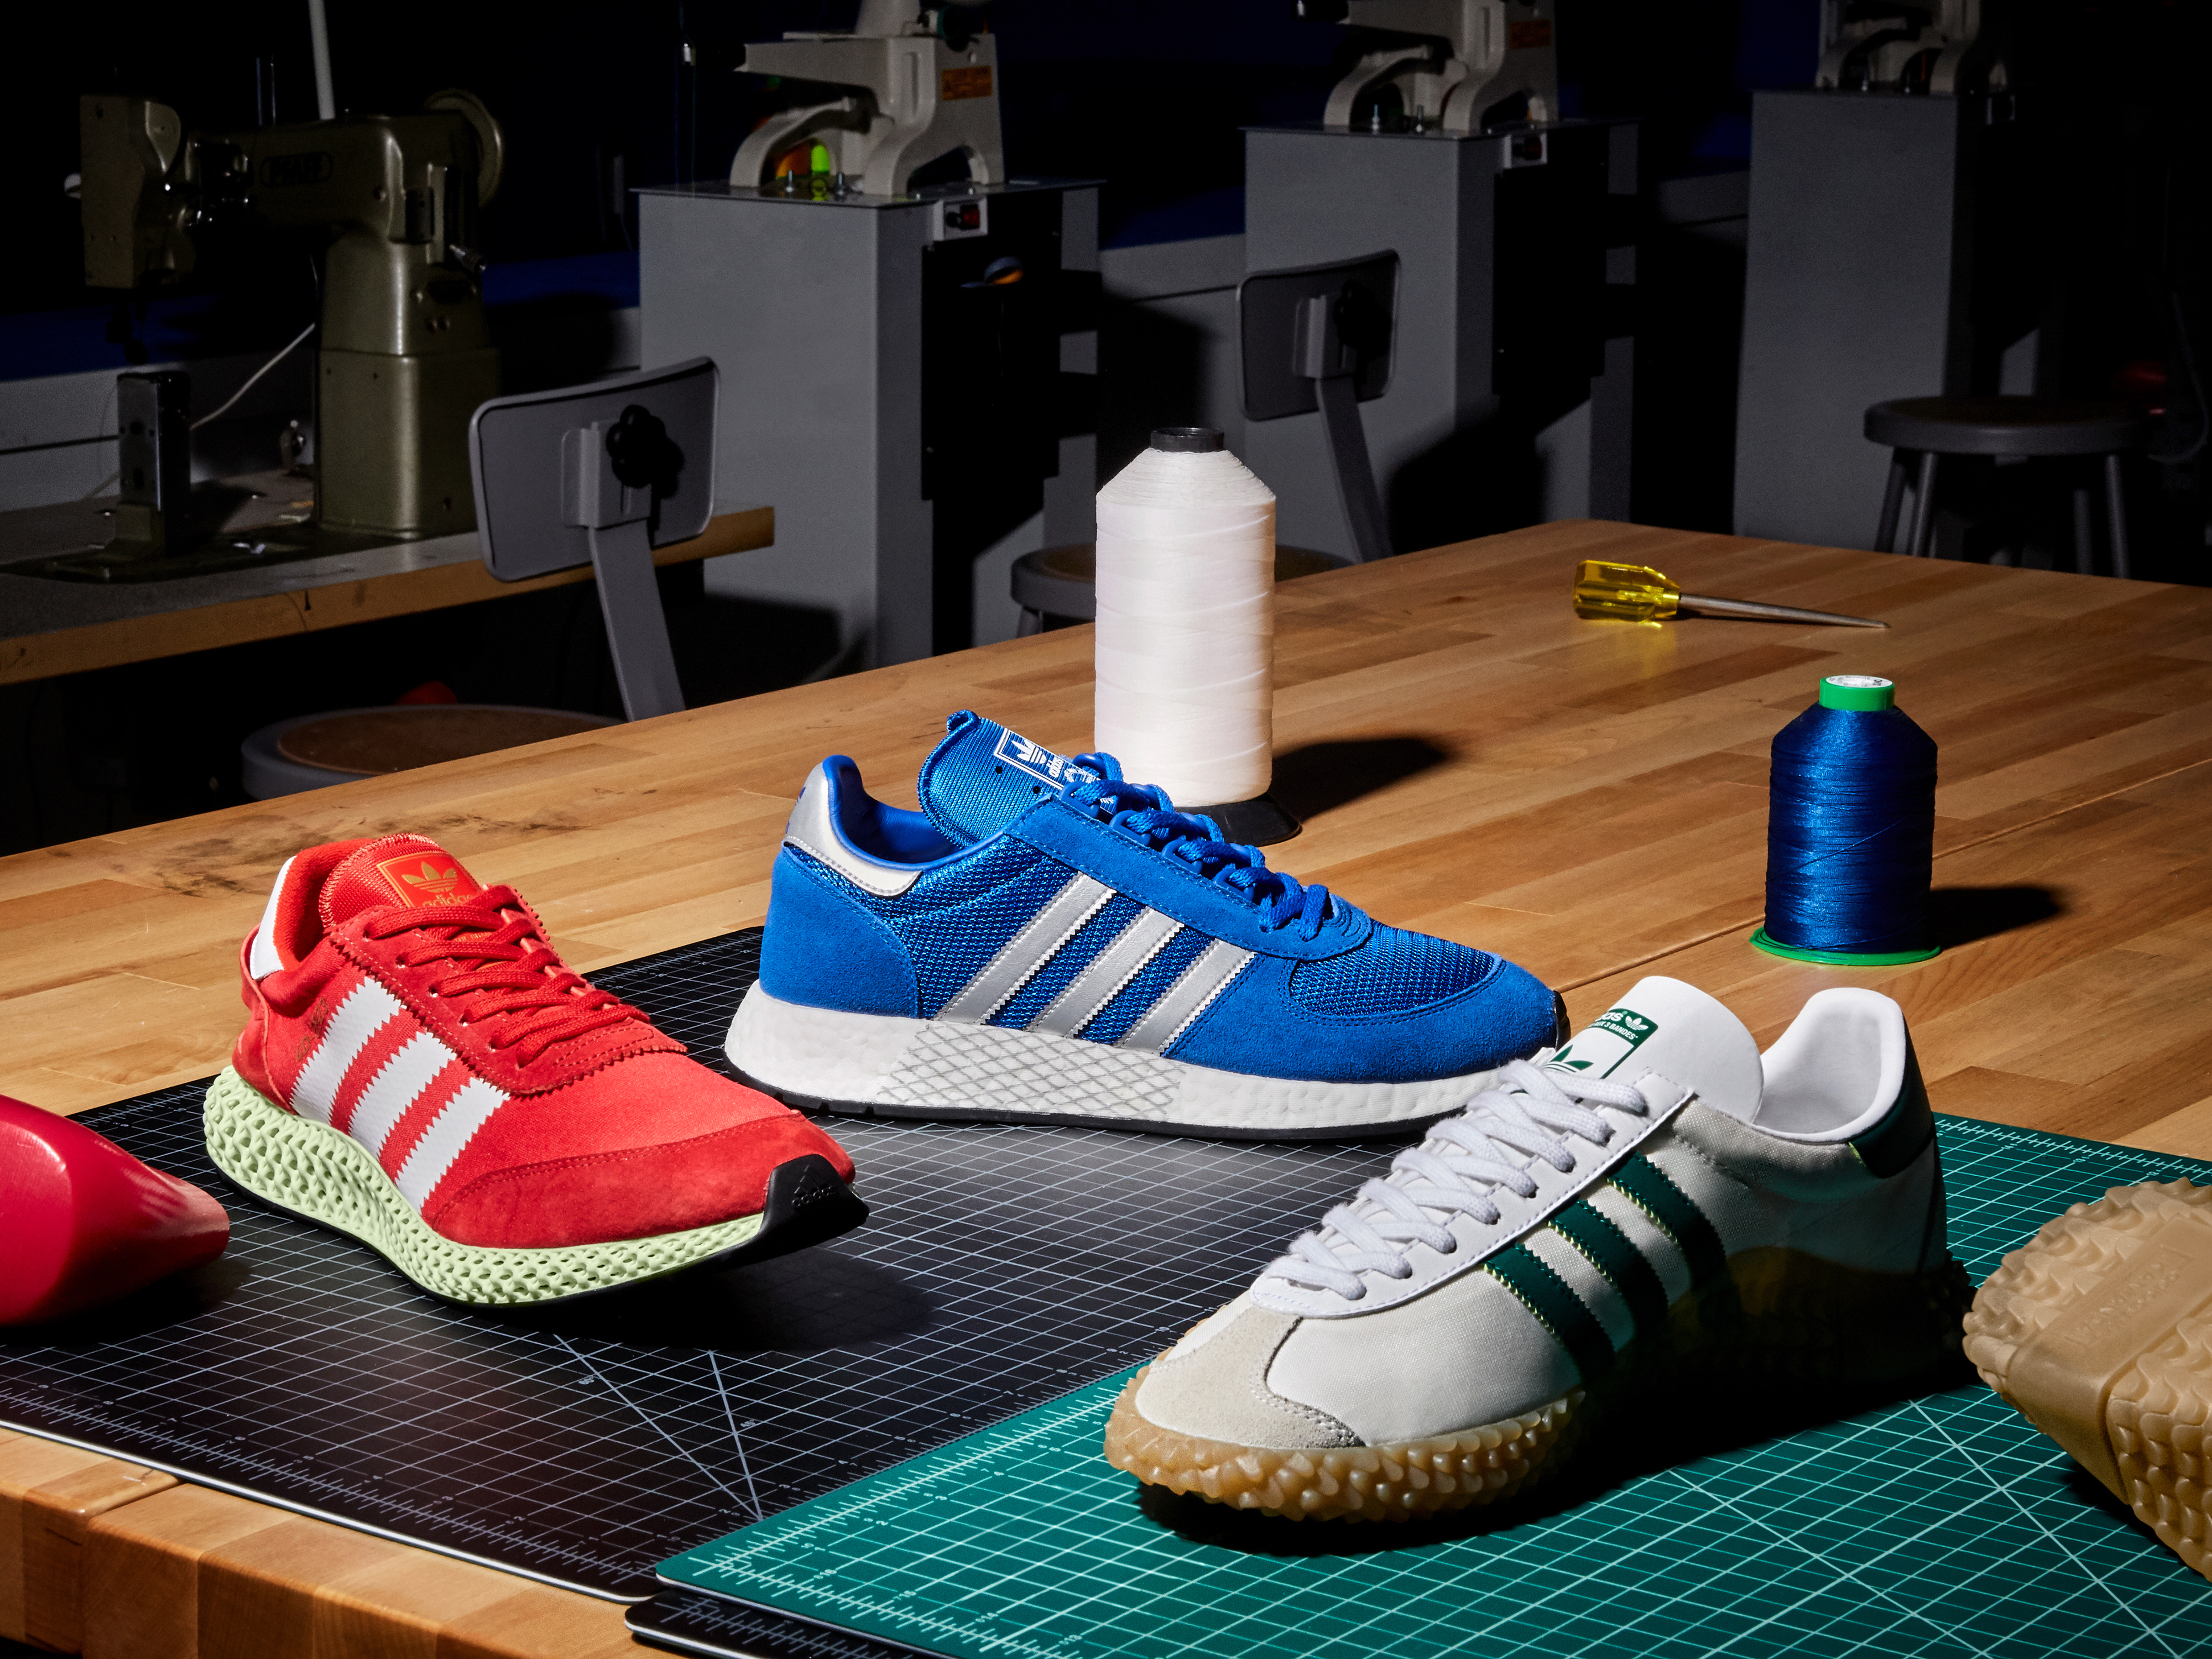 adidas coleccion never made